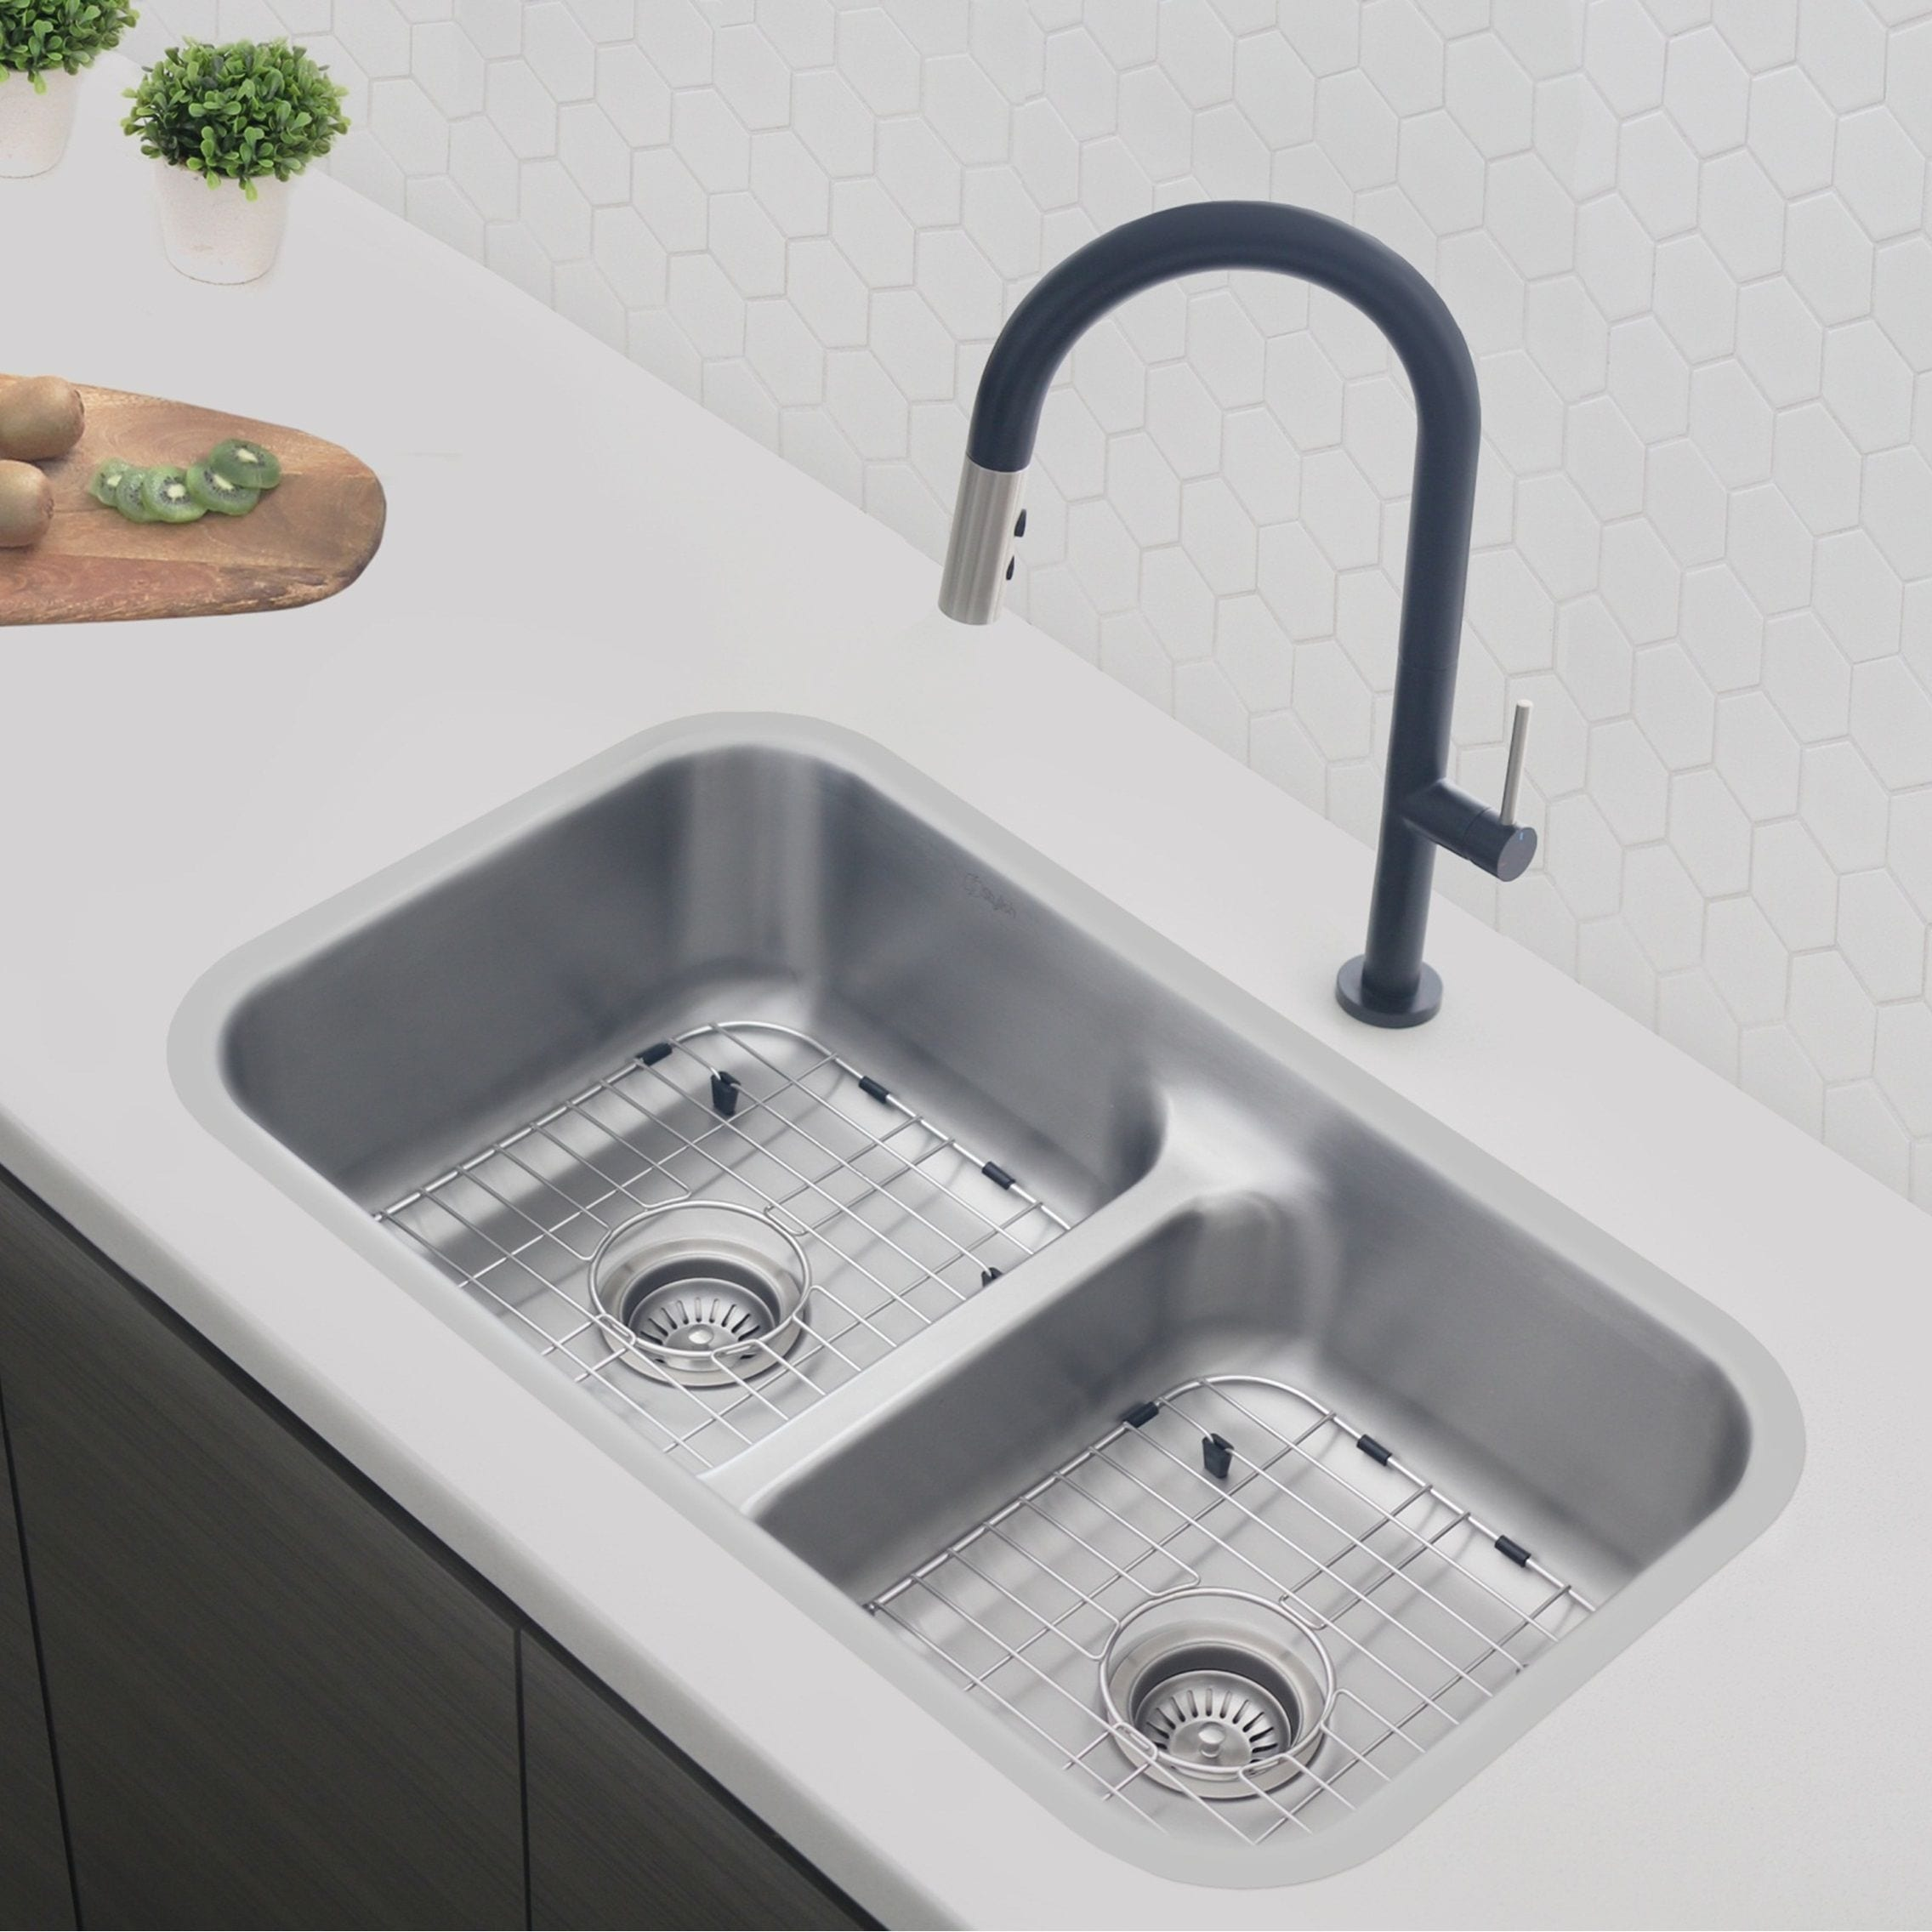 32 L X 18 W Stainless Steel Double Basin Undermount Drop In Kitchen Sink With Grids And Strainers Overstock 31733939